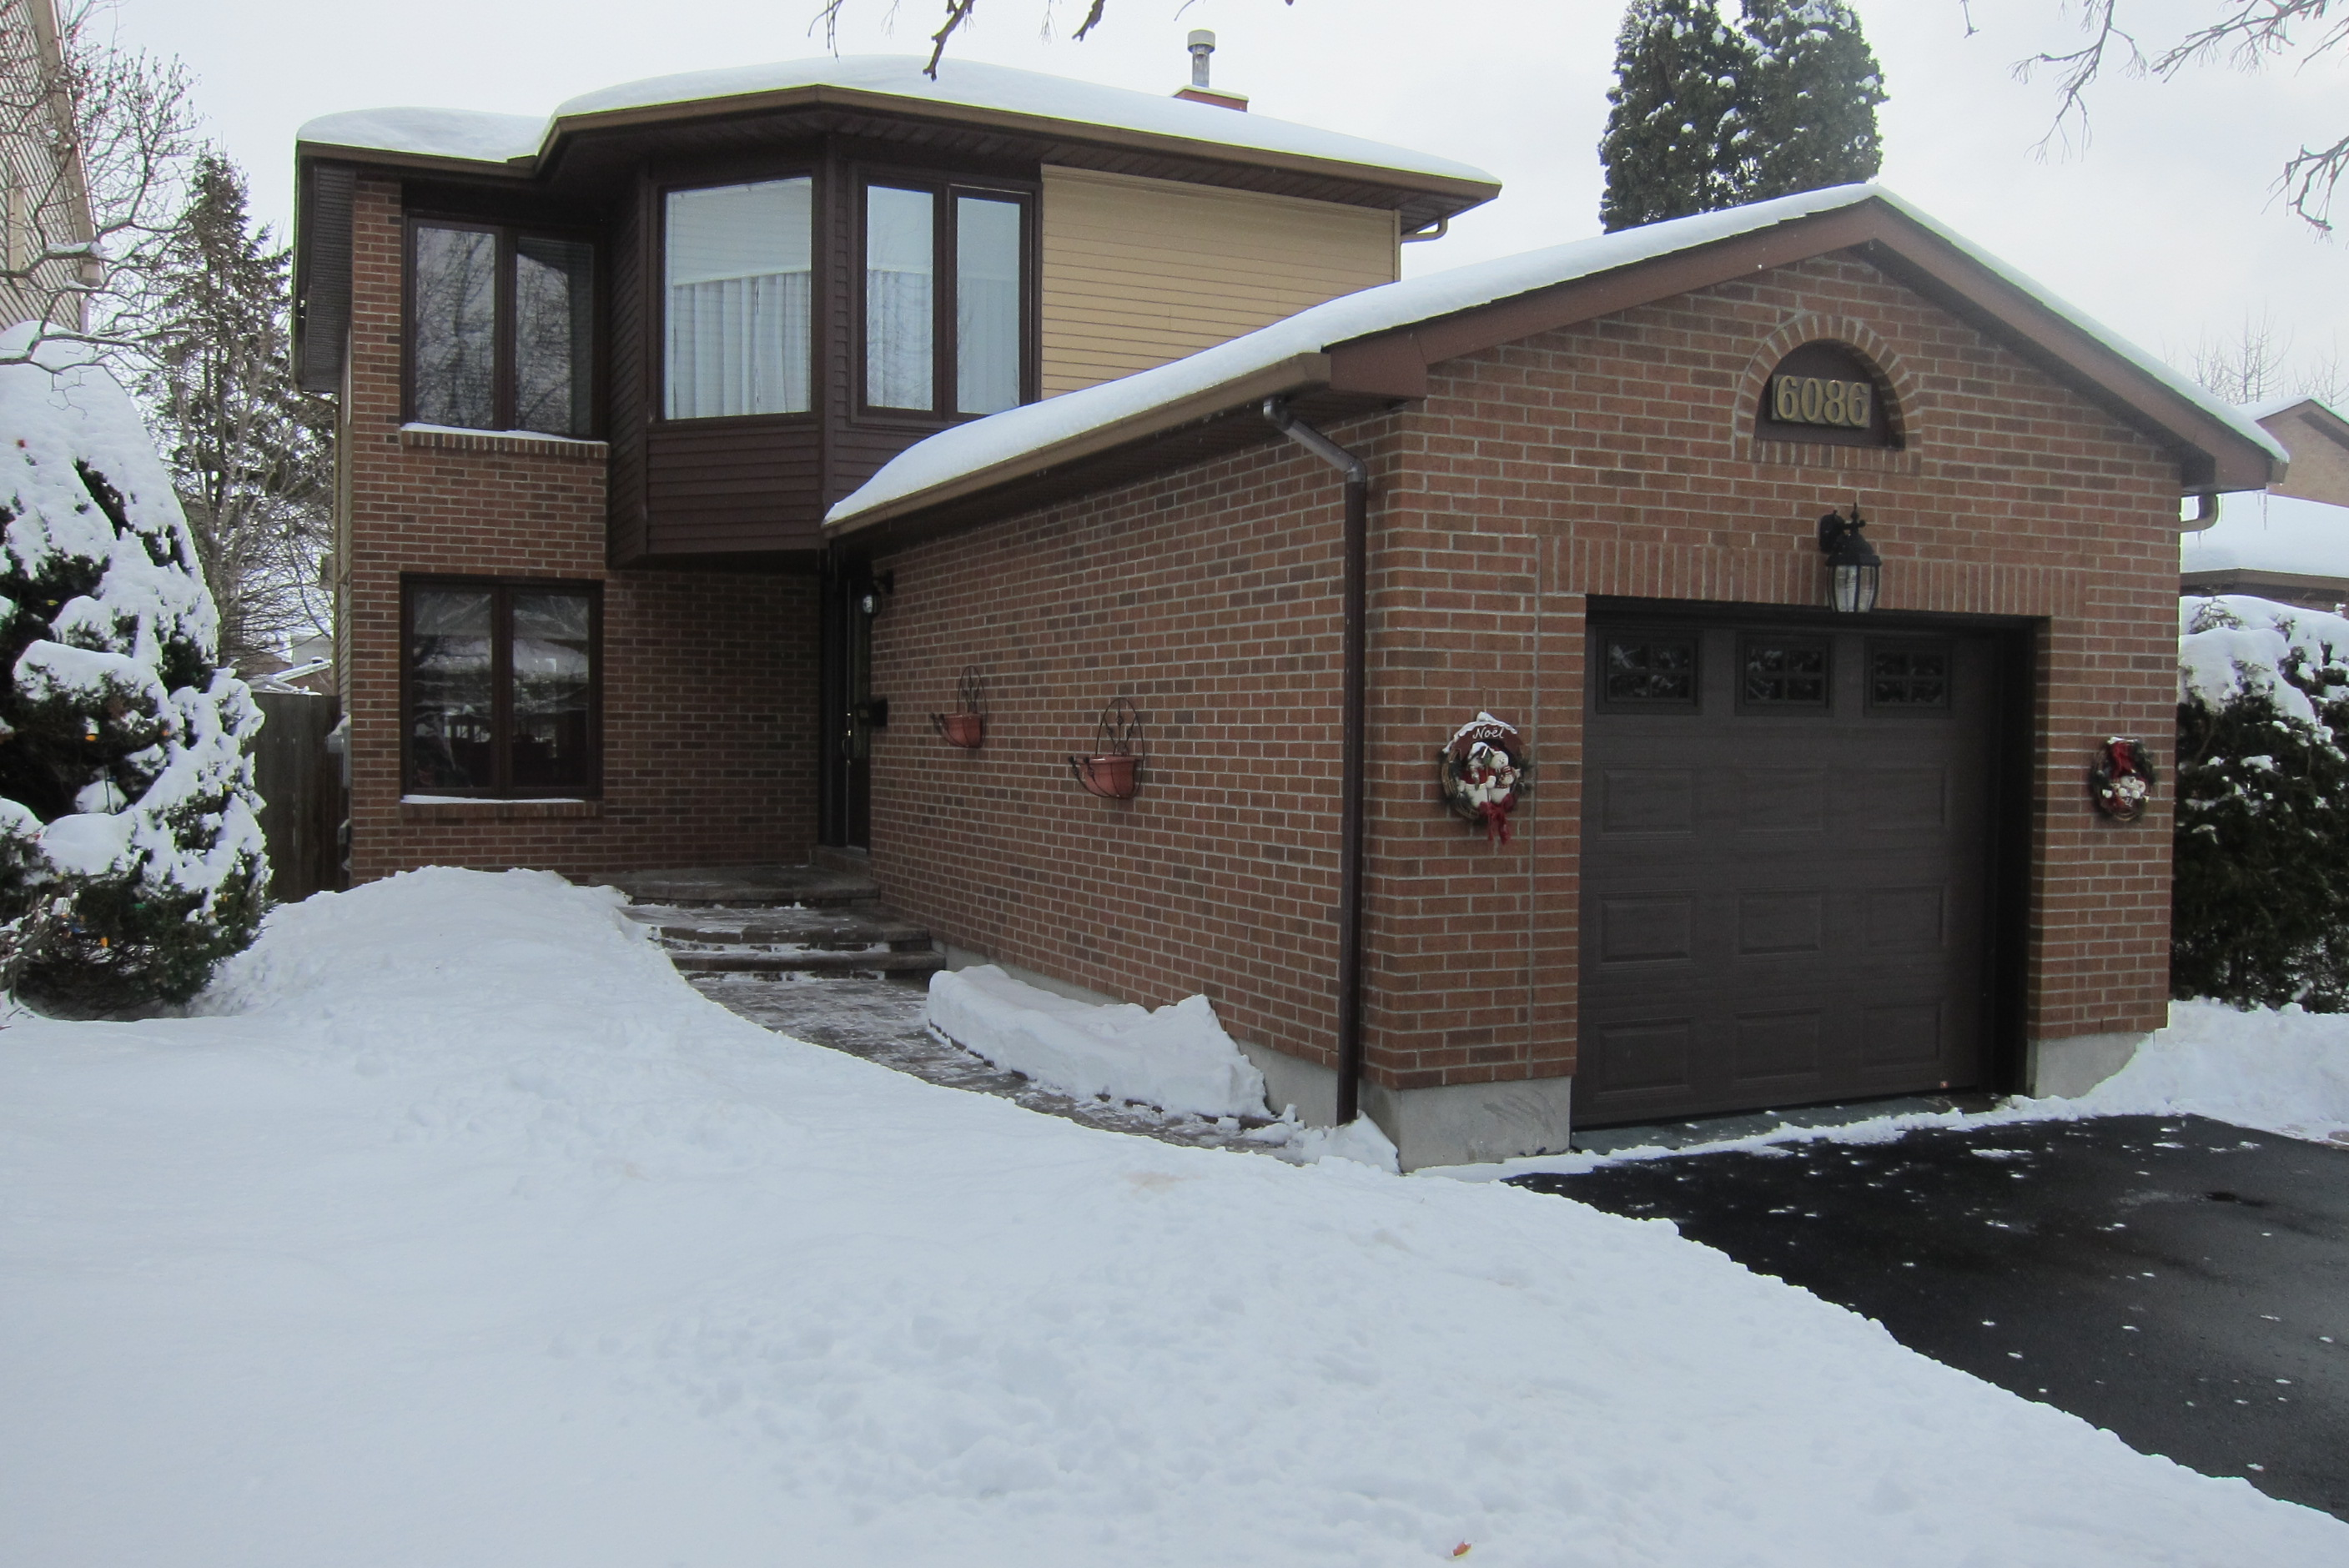 ^ Blog: NW LISING! 6086 idgelea Place, (hapel Hill) Ottawa, ON